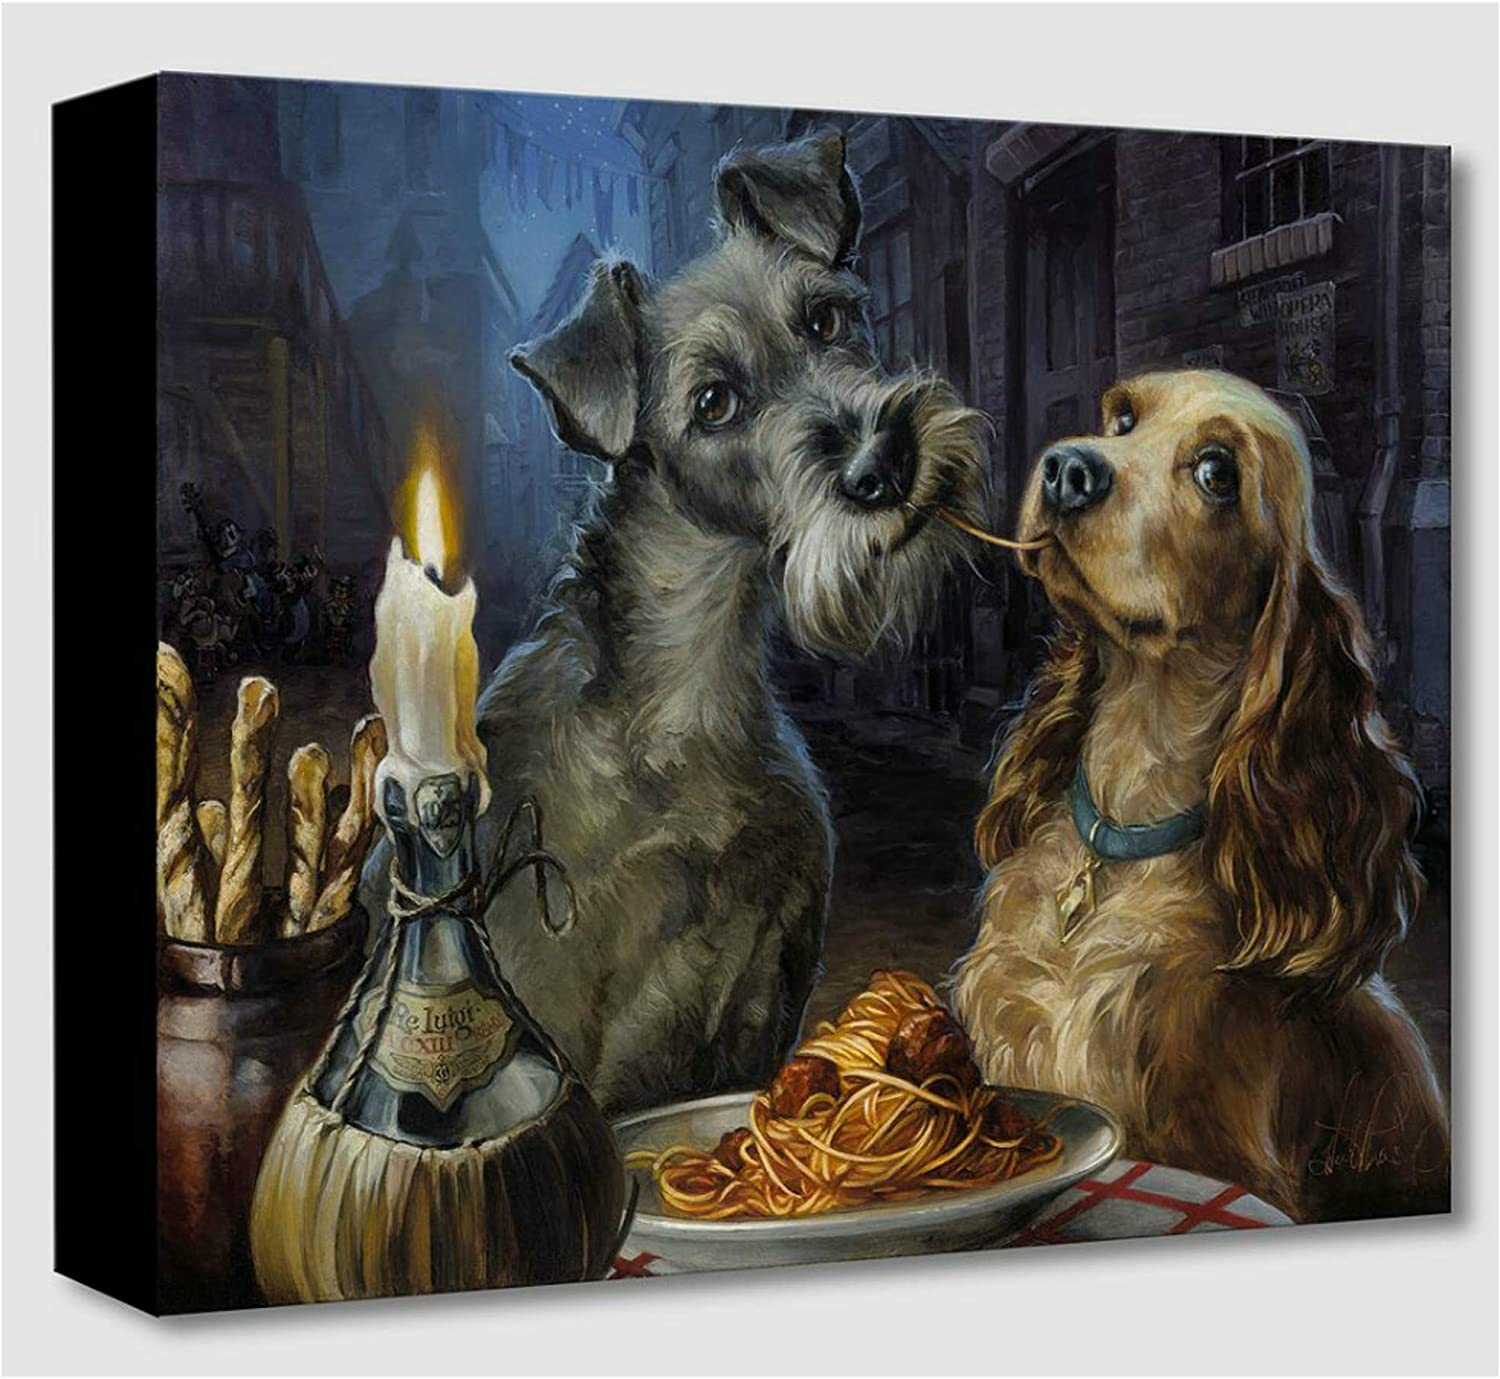 Amazon Com Disney Fine Art Bella Notte By Heather Edwards Treasures On Canvas Lady And The Tramp 12 Inches X 16 Inches Reproduction Gallery Wrapped Canvas Wall Art Posters Prints